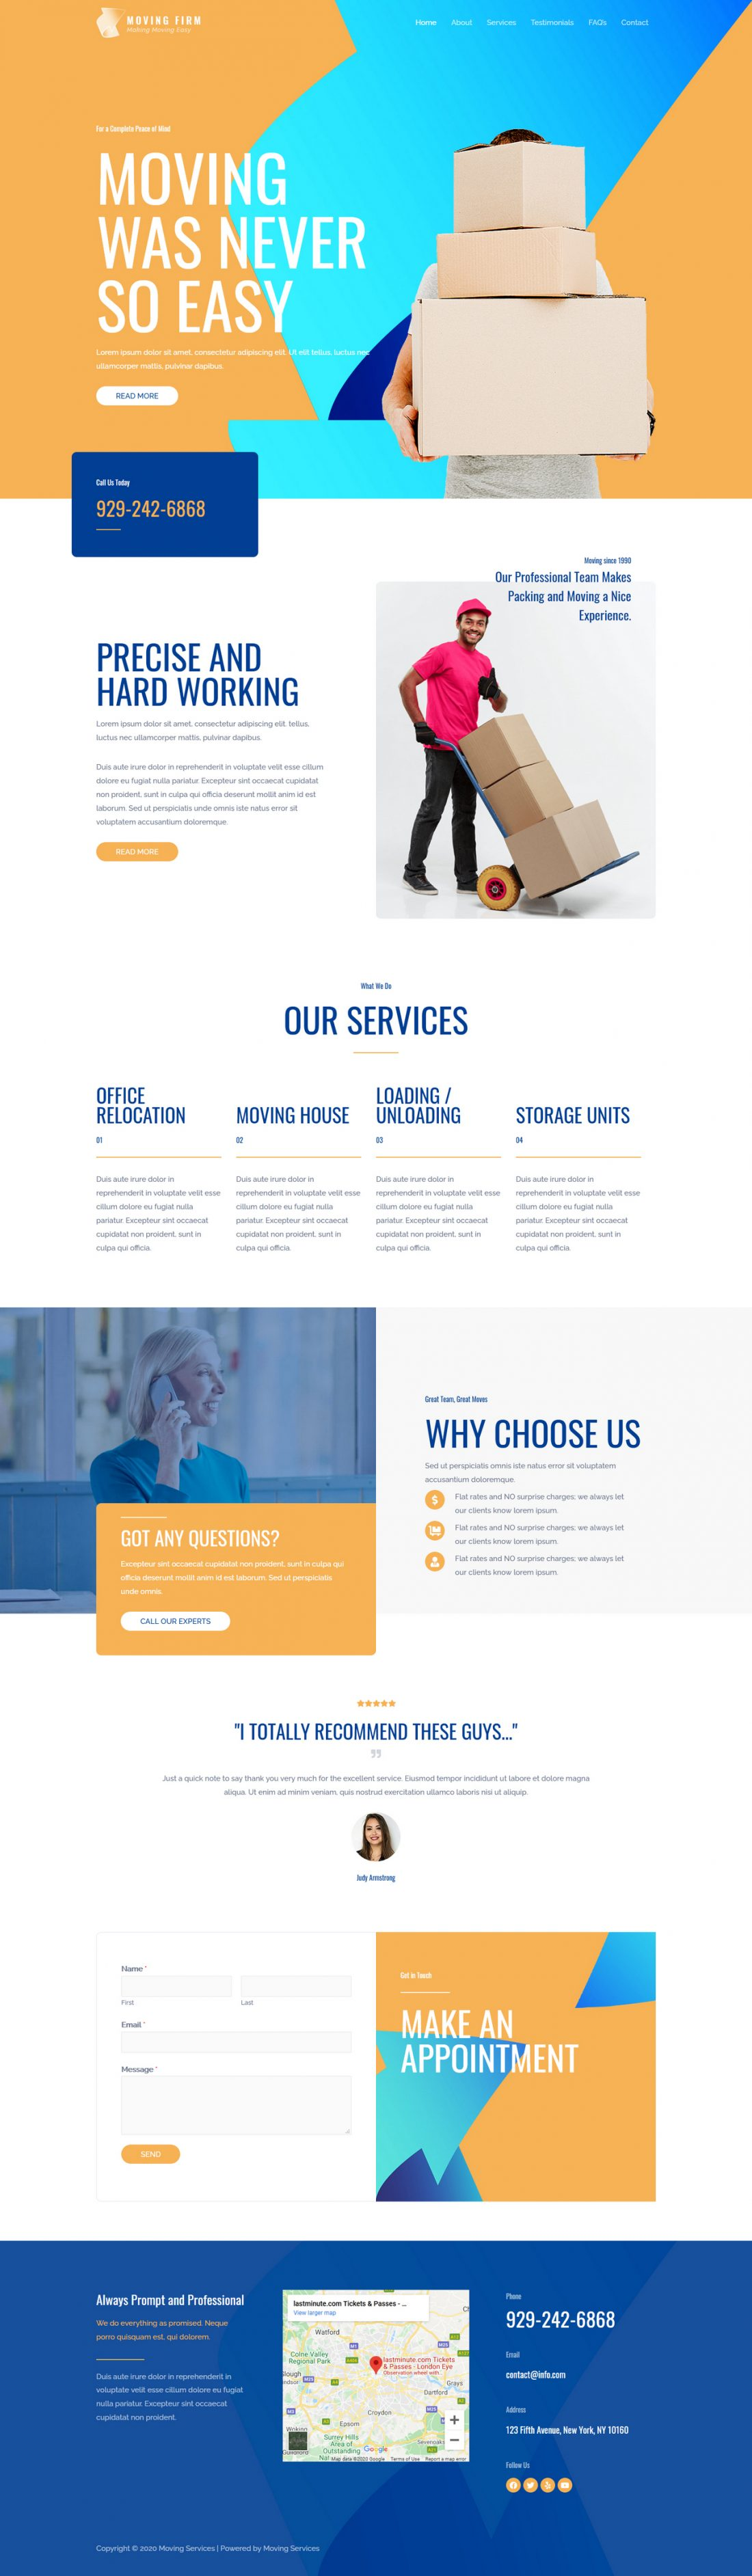 Fagowi.com Website Design Templates For Moving and Home Removals - Home Page Image